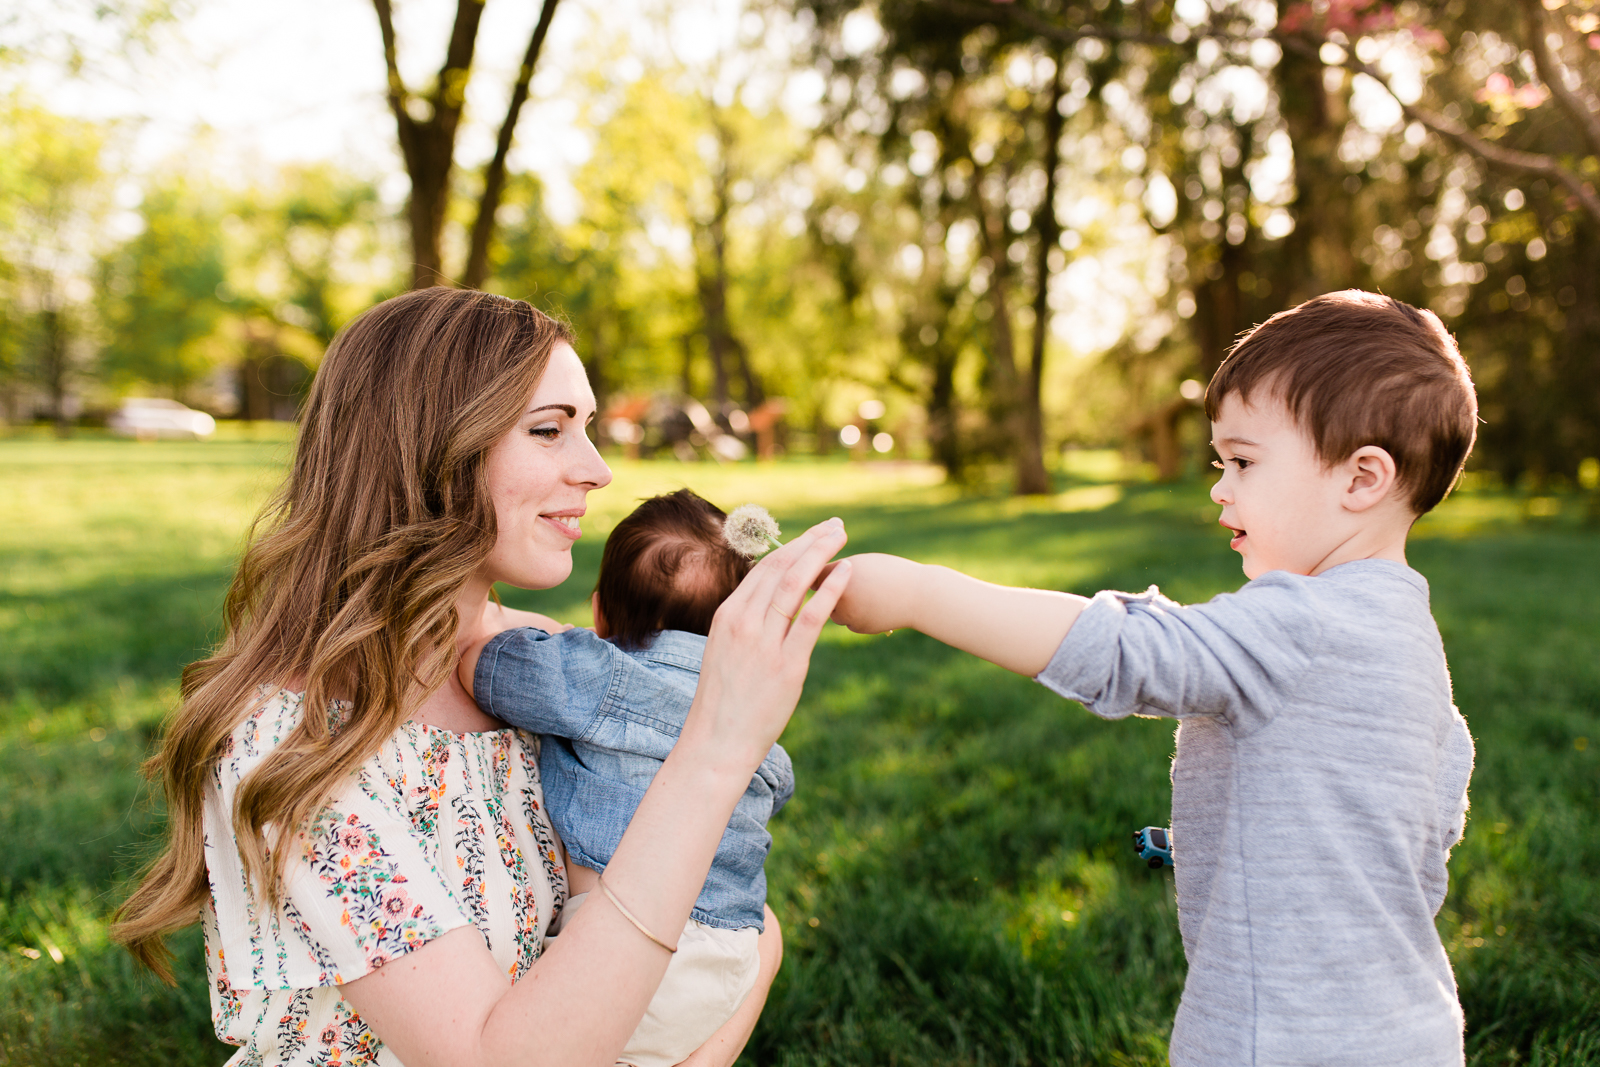 Mother and sons with dandelions, golden hour session at Loose park, mommy and me session, Kansas City family photographer, Rebecca Clair Photography